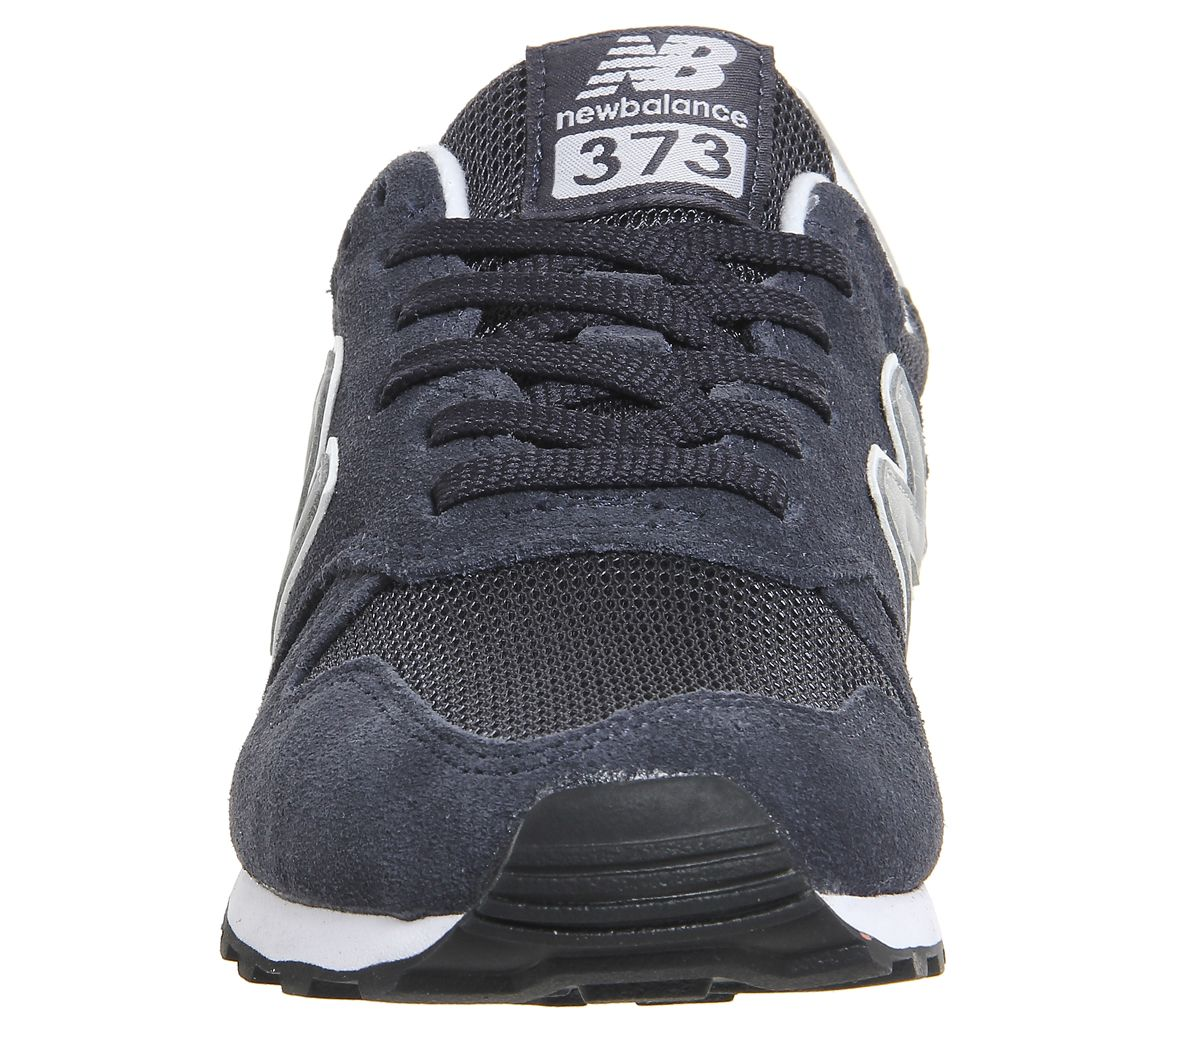 sneakers for cheap d5cc9 9624b Double tap to zoom into the image. New Balance, 373, Navy Silver ...